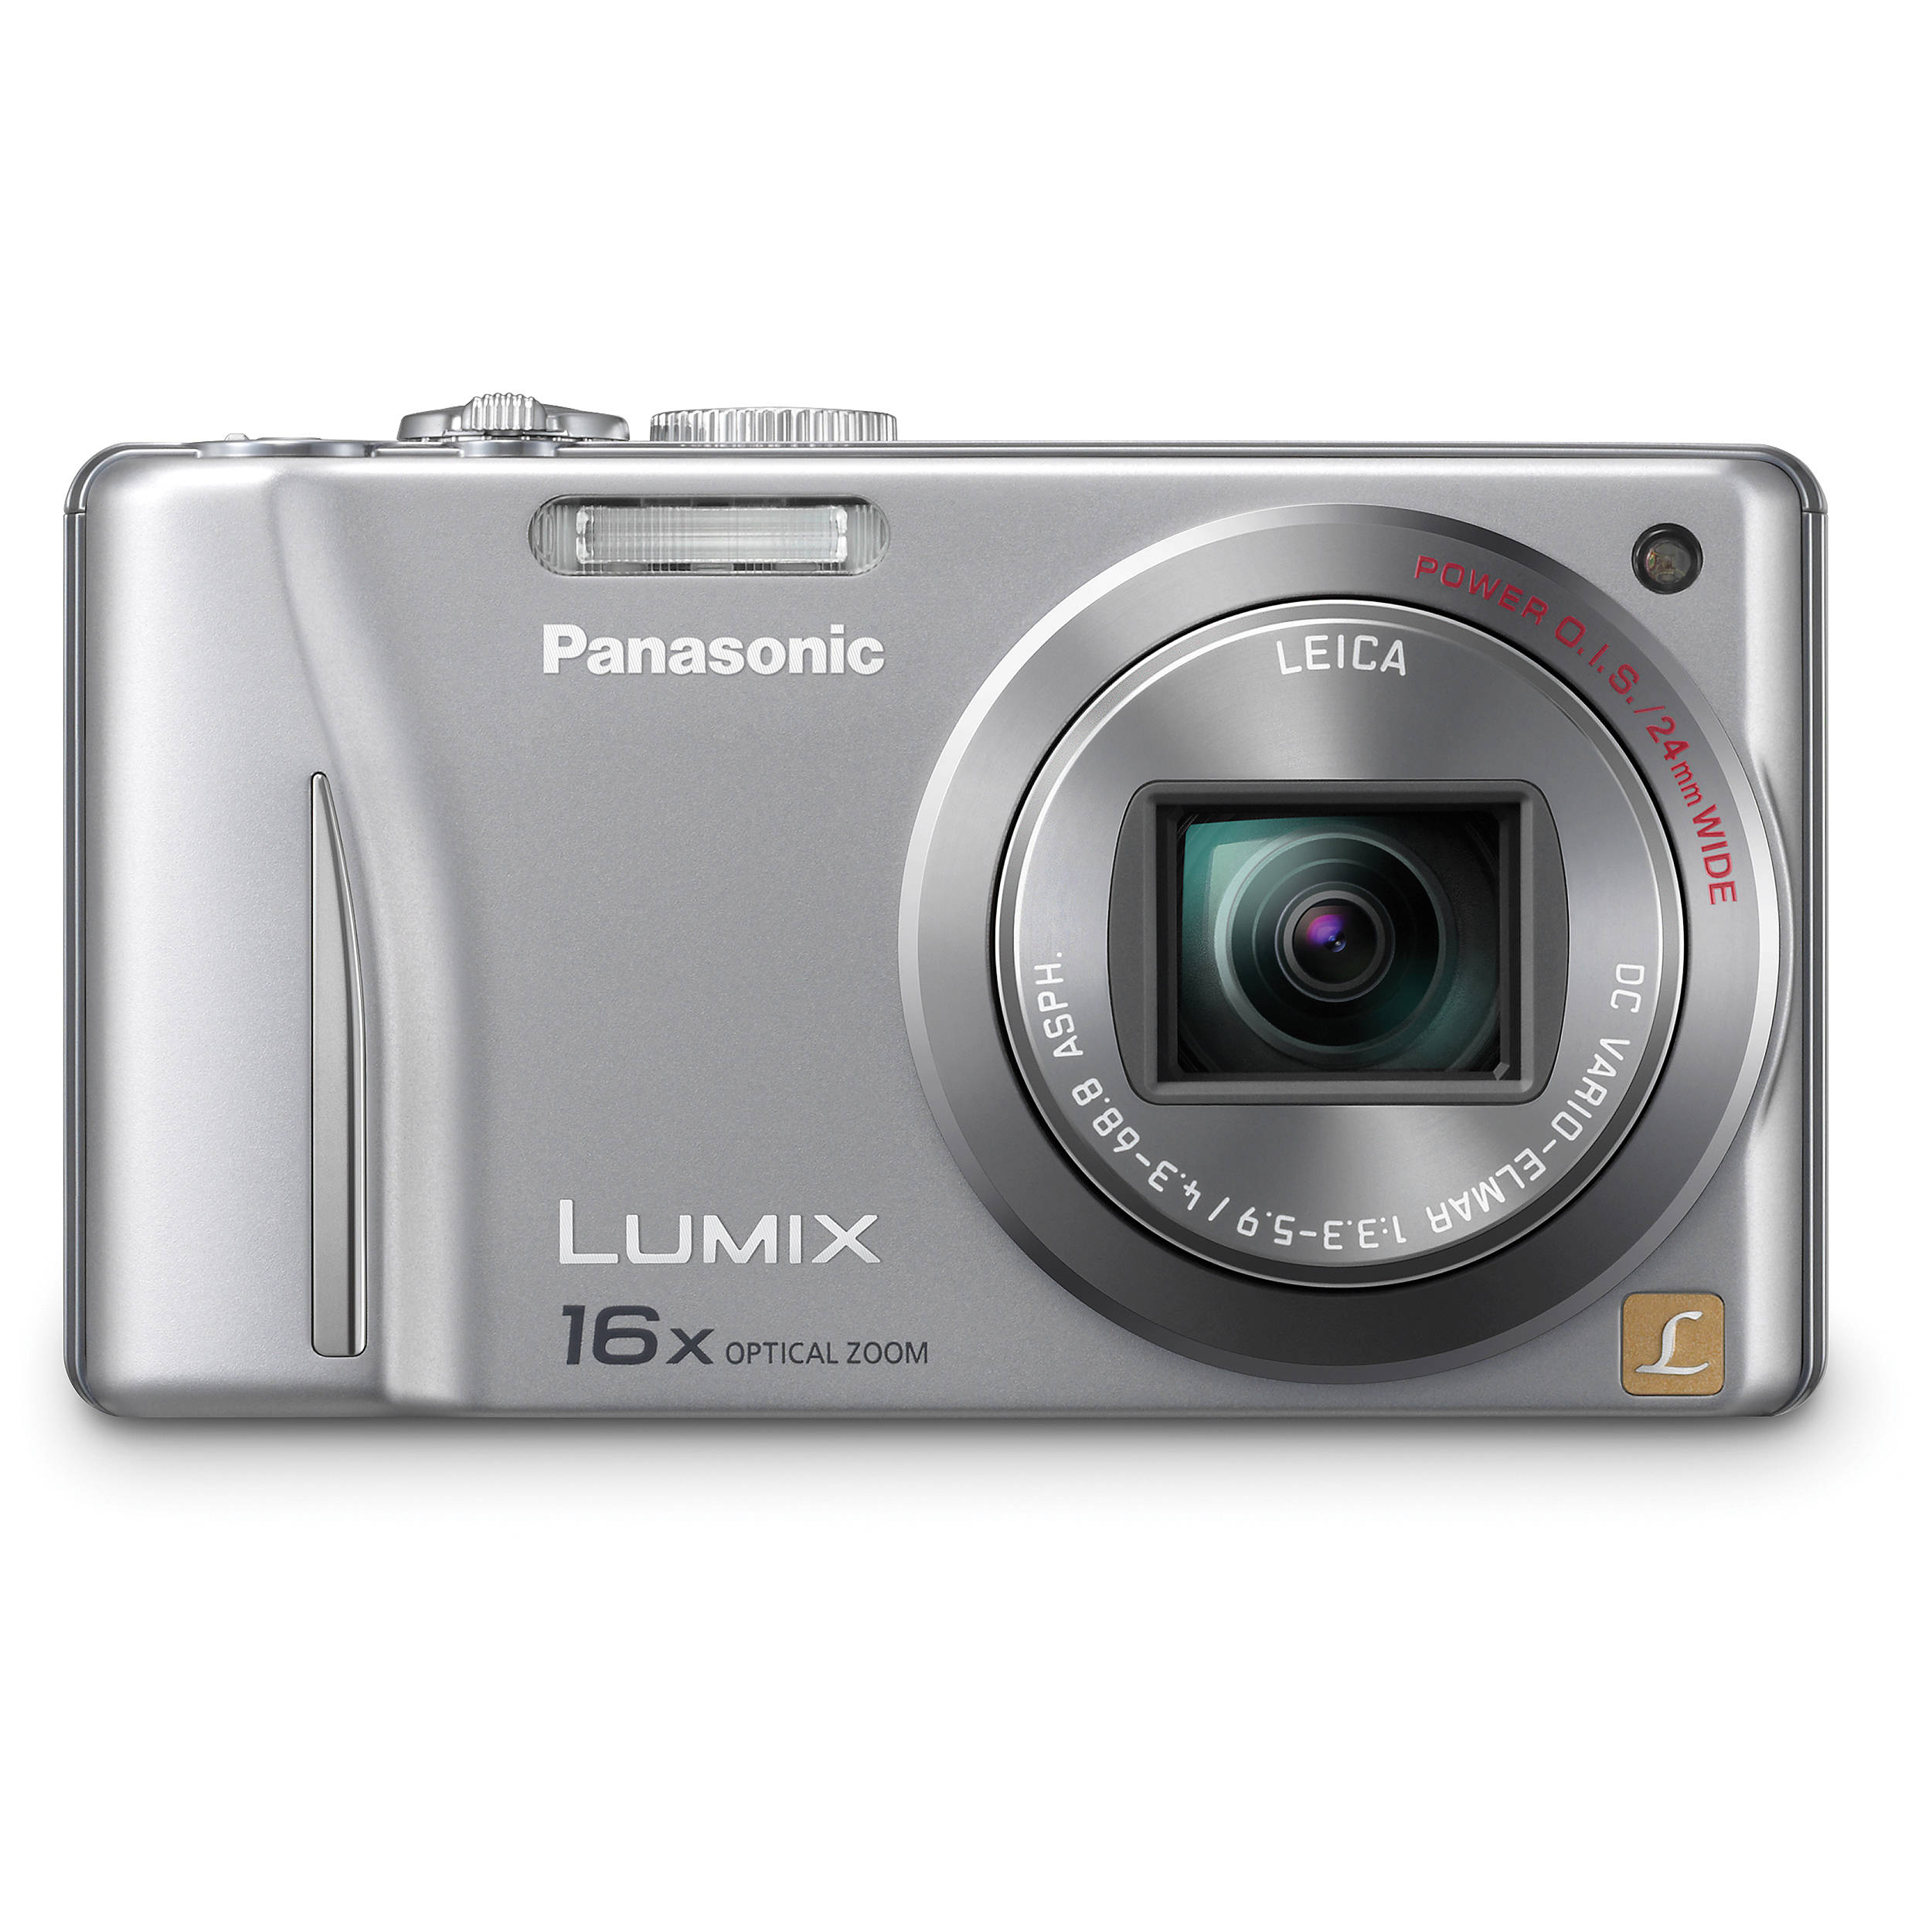 panasonic lumix dmc zs8 digital camera silver dmc zs8s b h rh bhphotovideo com Panasonic DMC ZS8 Manual Lumix DMC ZS8 Manual